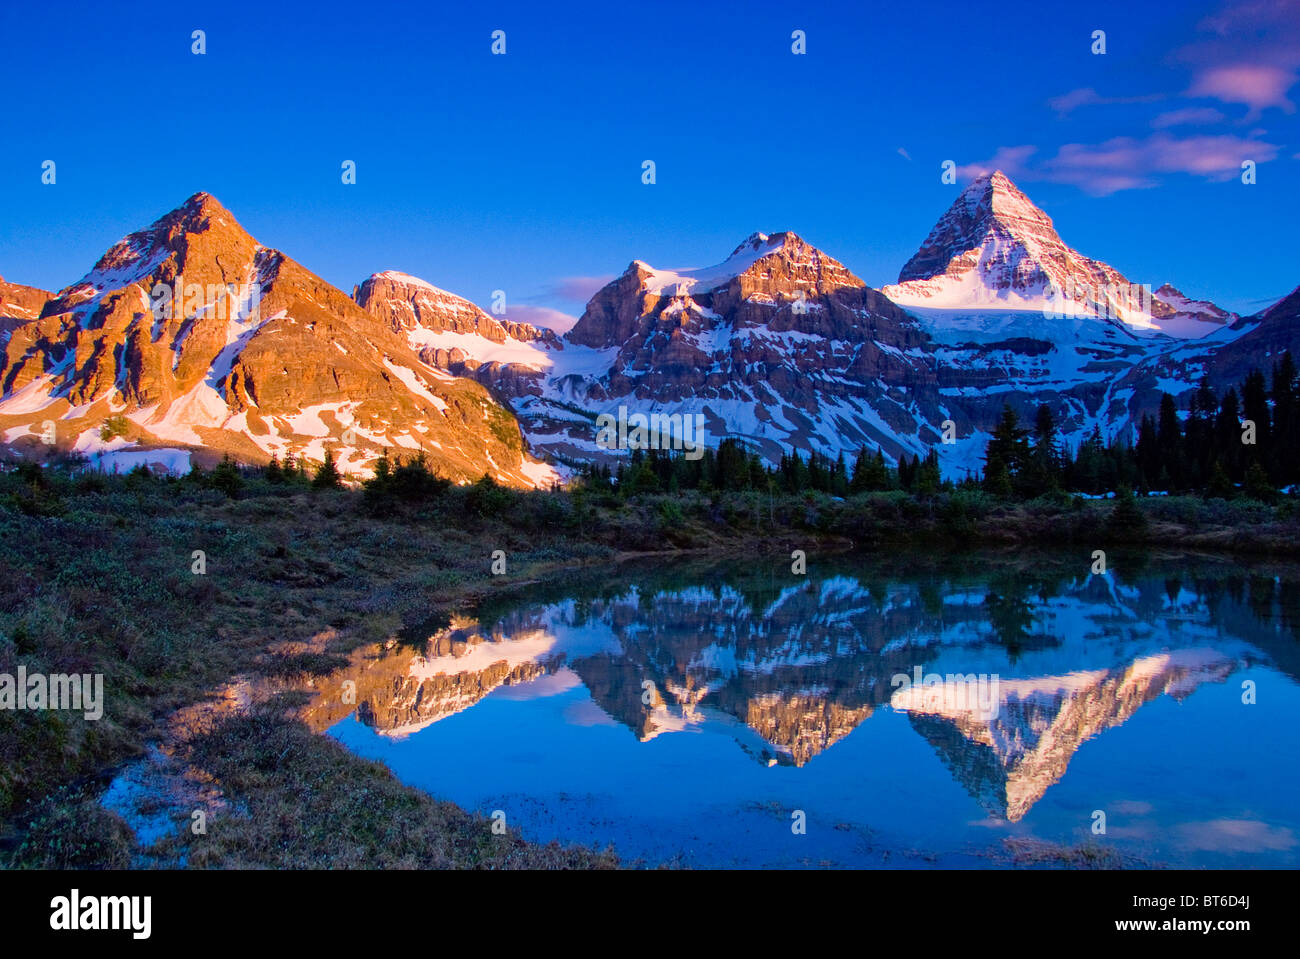 Mt. Assinibone at sunset, Matterhorn of the Rockies, Mt. Assiniboine Provincial Park, Canadian Rockies, British - Stock Image